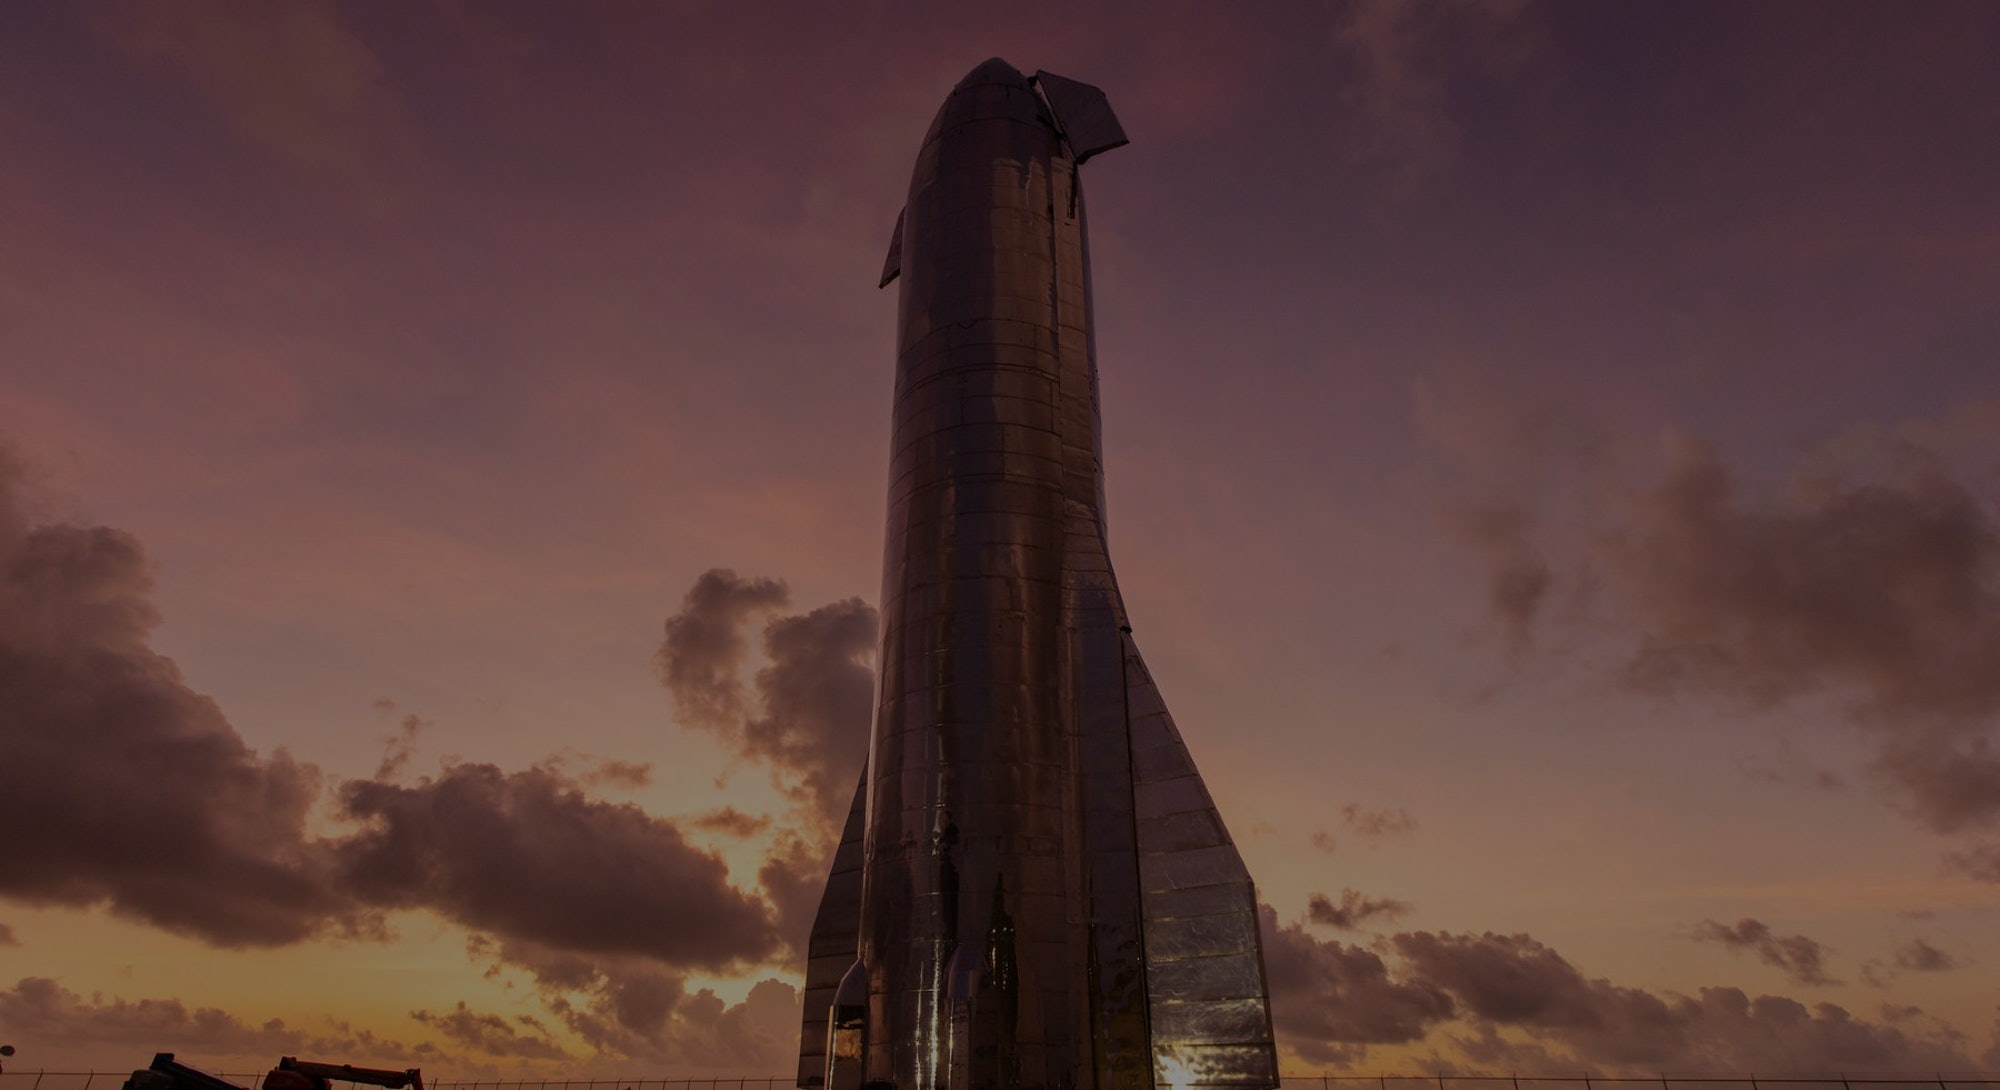 SpaceX Starship against sunset